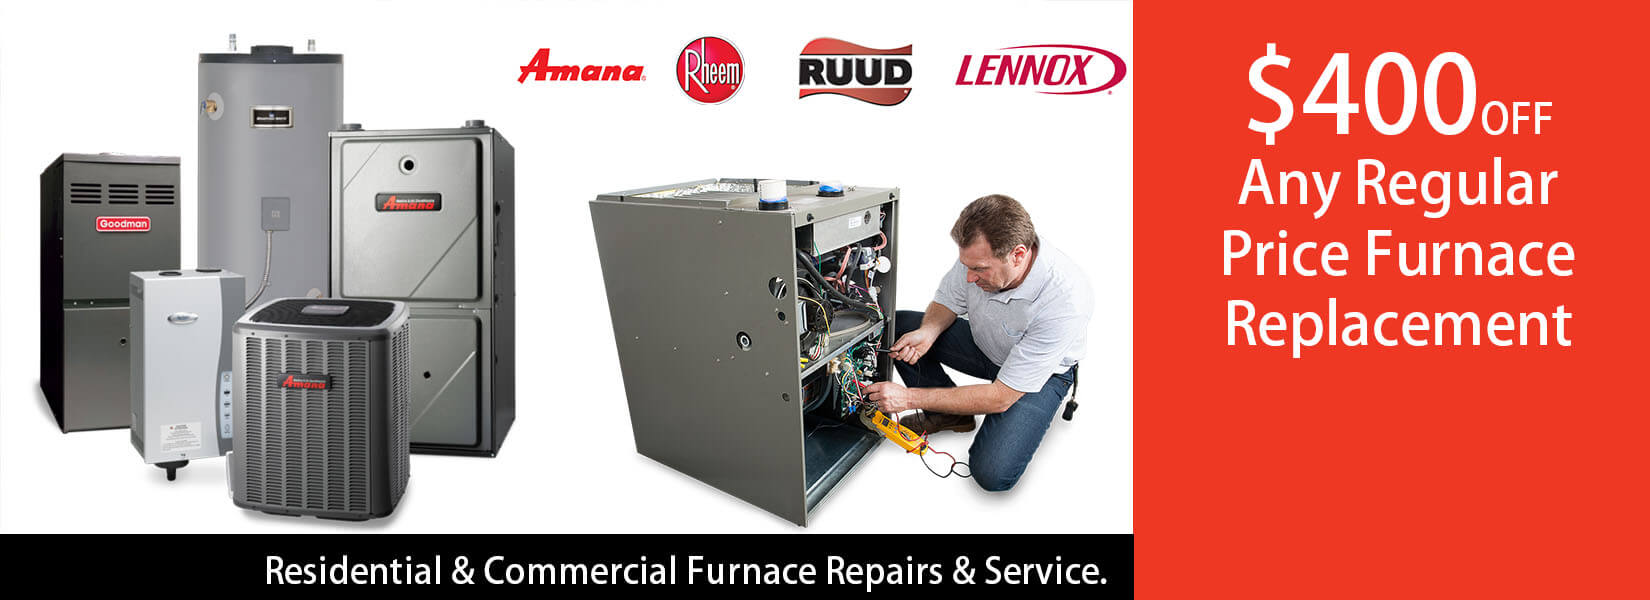 funace repair service nj